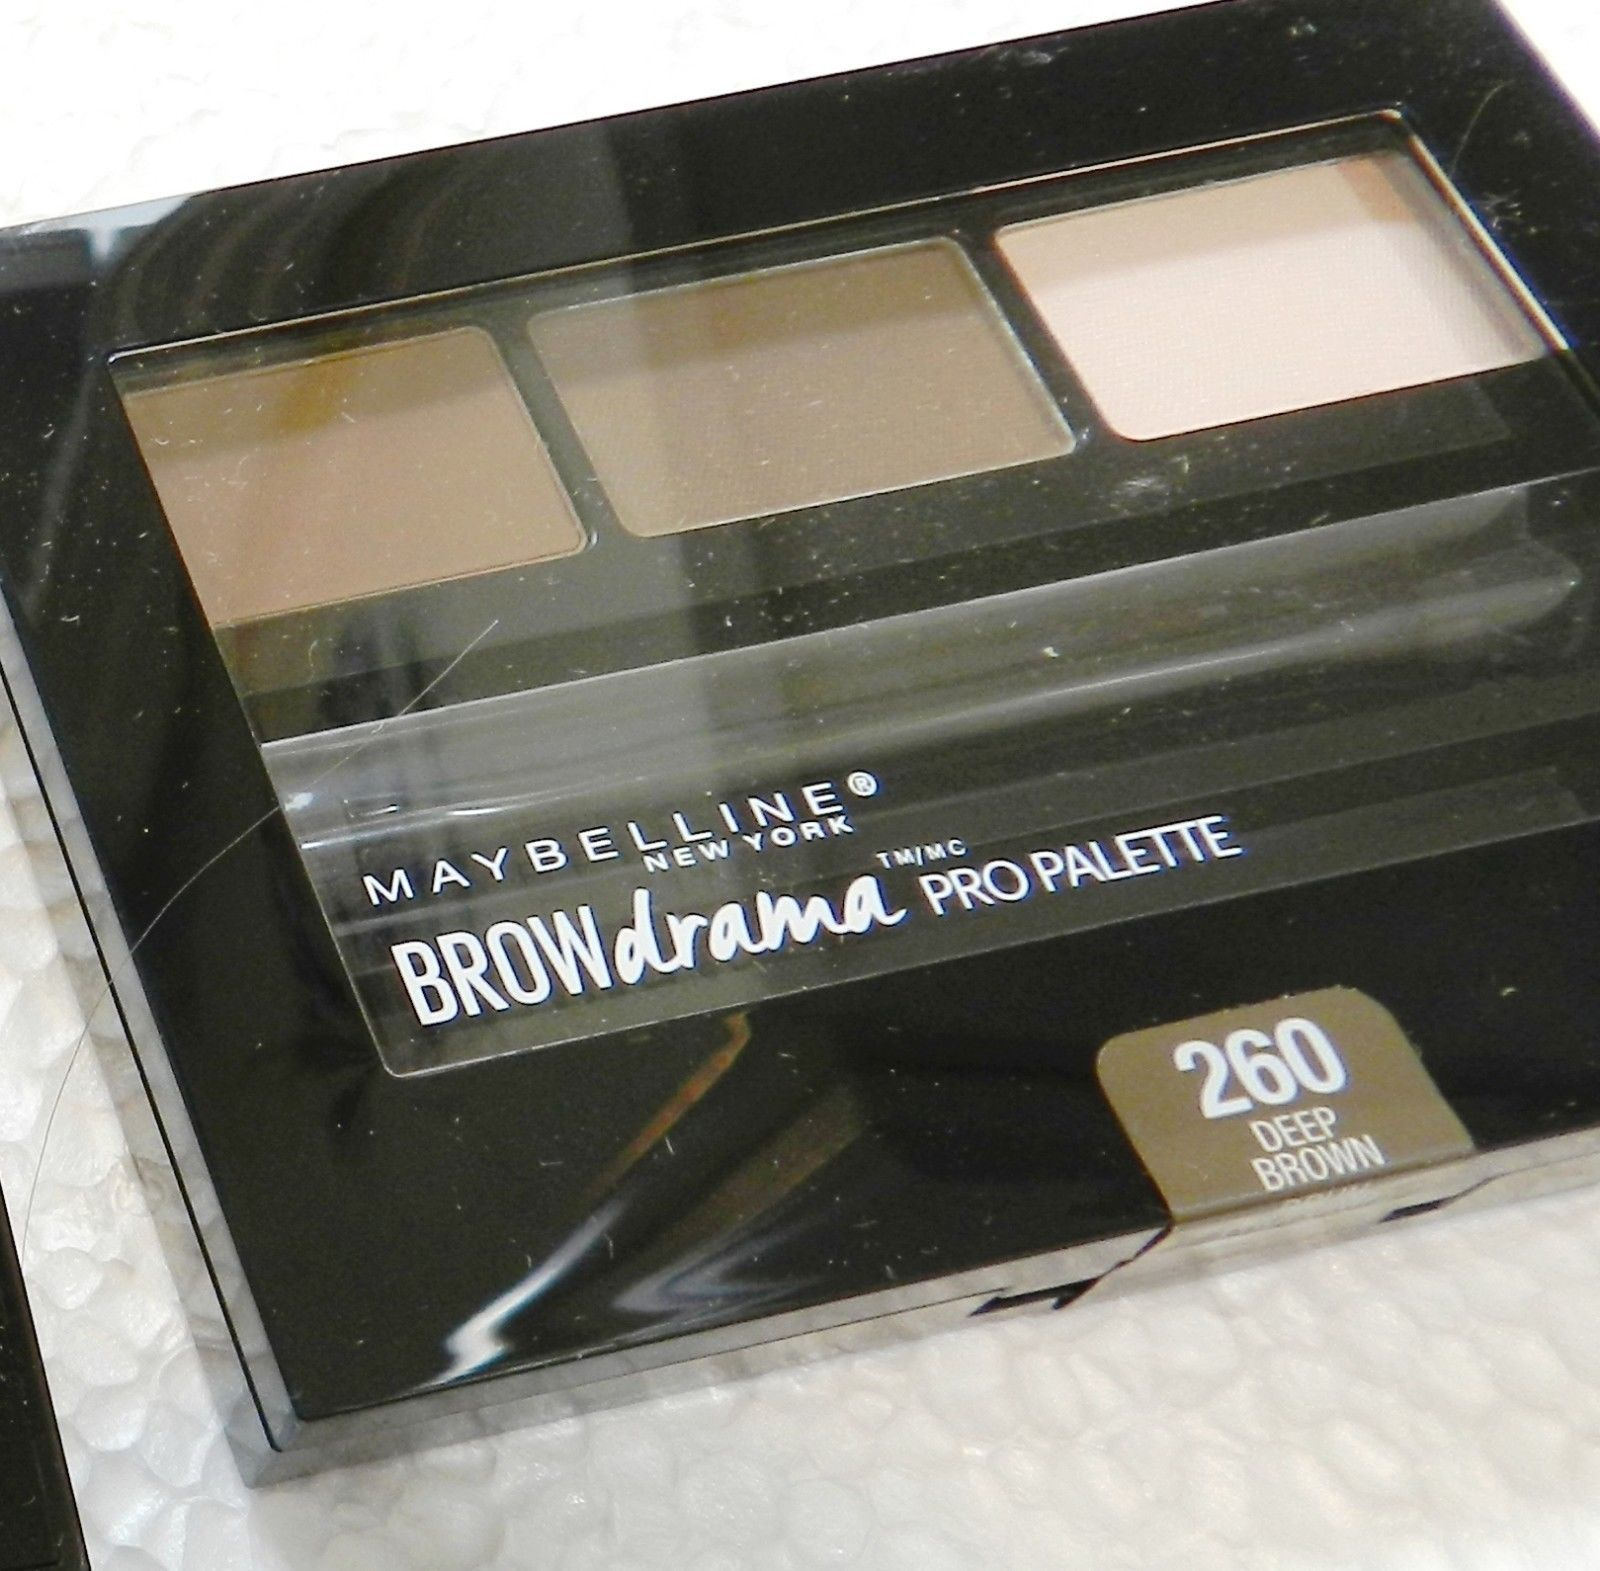 ffe4a6ae2c9 Maybelline Brow Drama Pro Palette ~ Sealed ~ and 50 similar items. 57